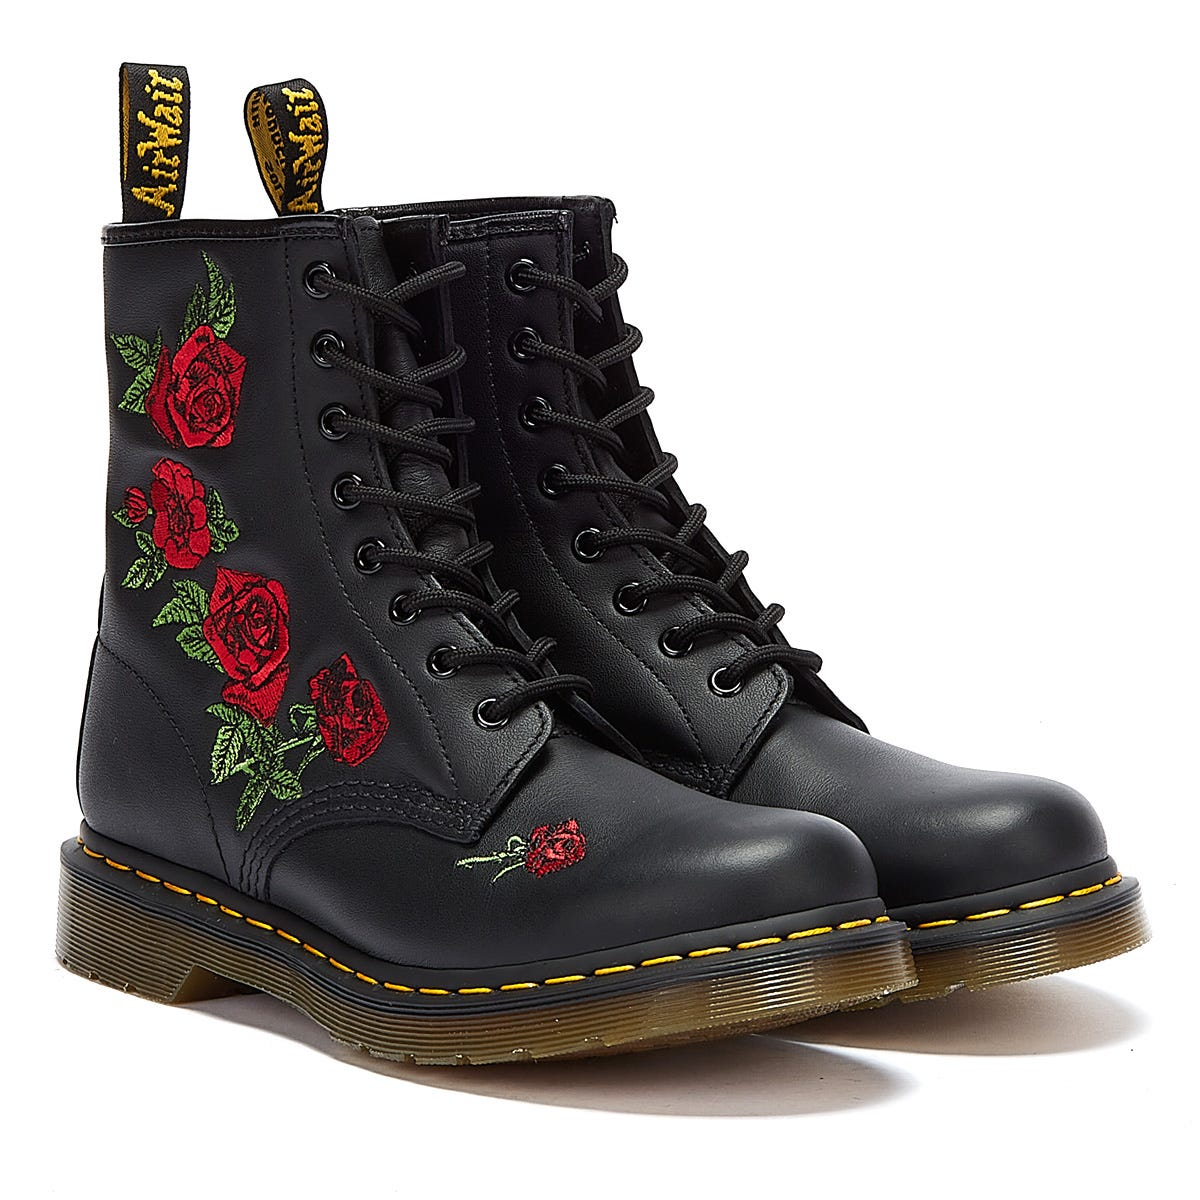 Trainers & Running Shoes Dr. Martens 1460 Vonda Womens Black Boots